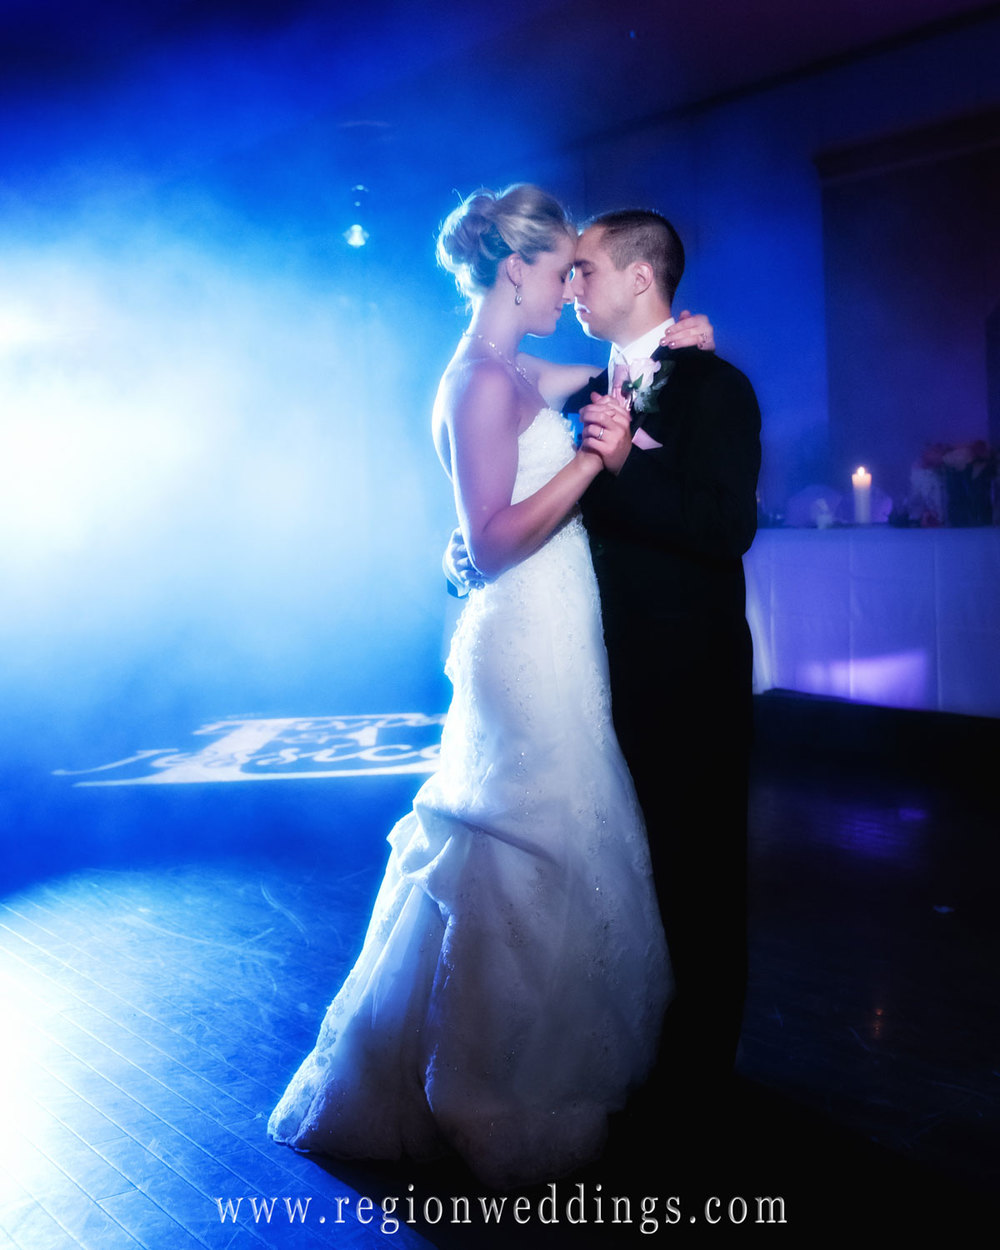 A young couple enjoys their first dance at Avalon Manor in a wash of dramatic blue light.